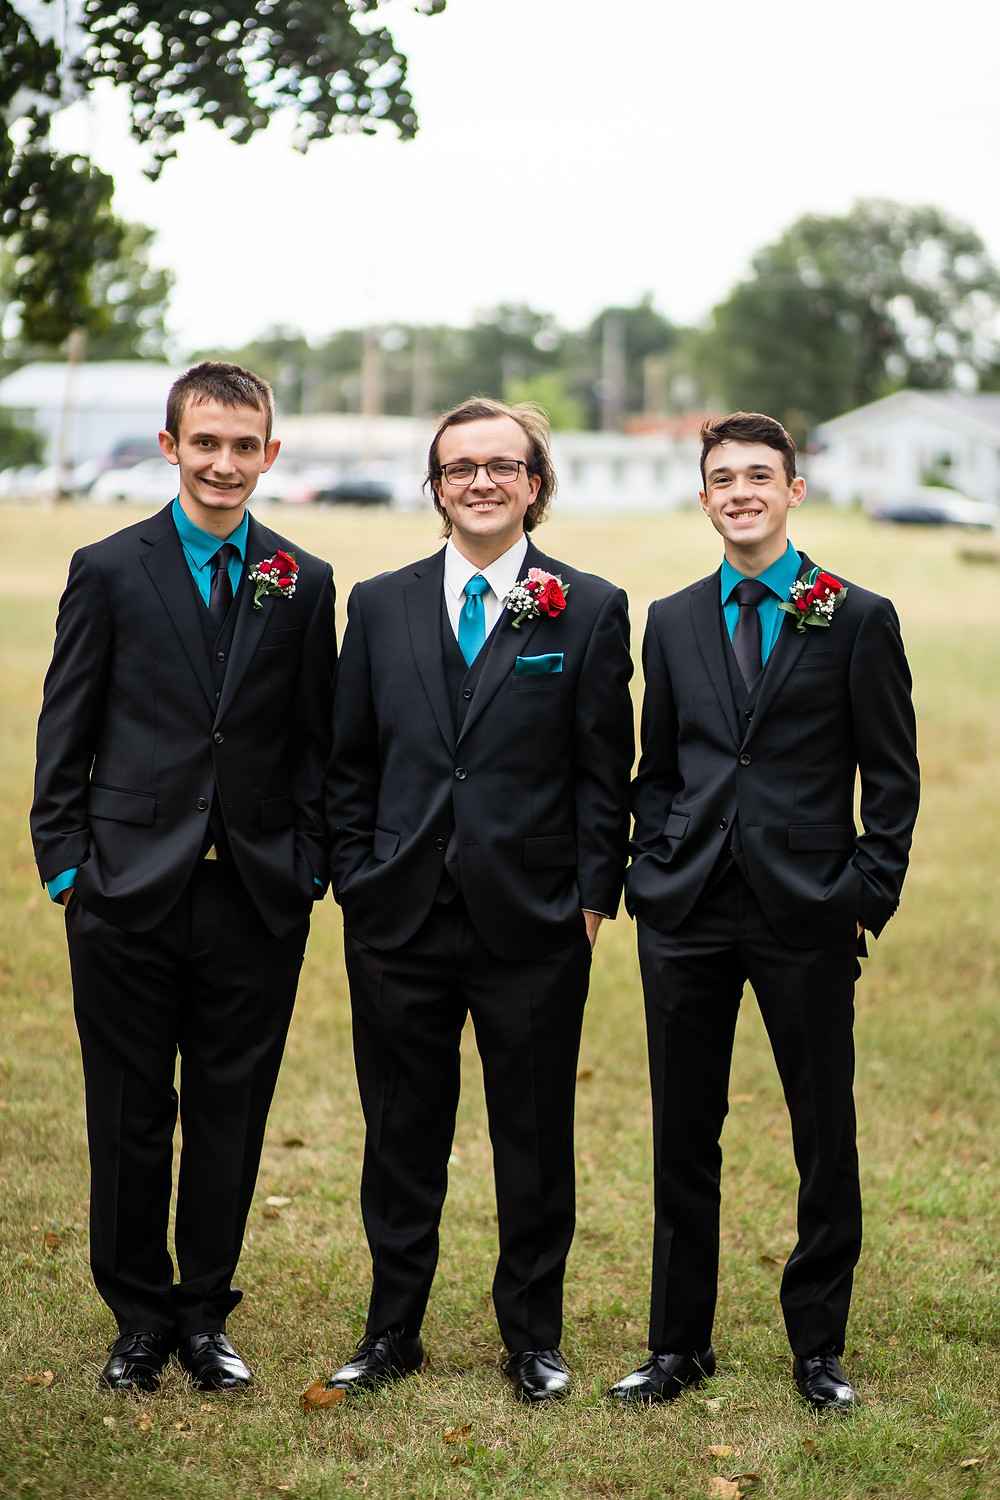 Groom and groomsmen standing next to each other